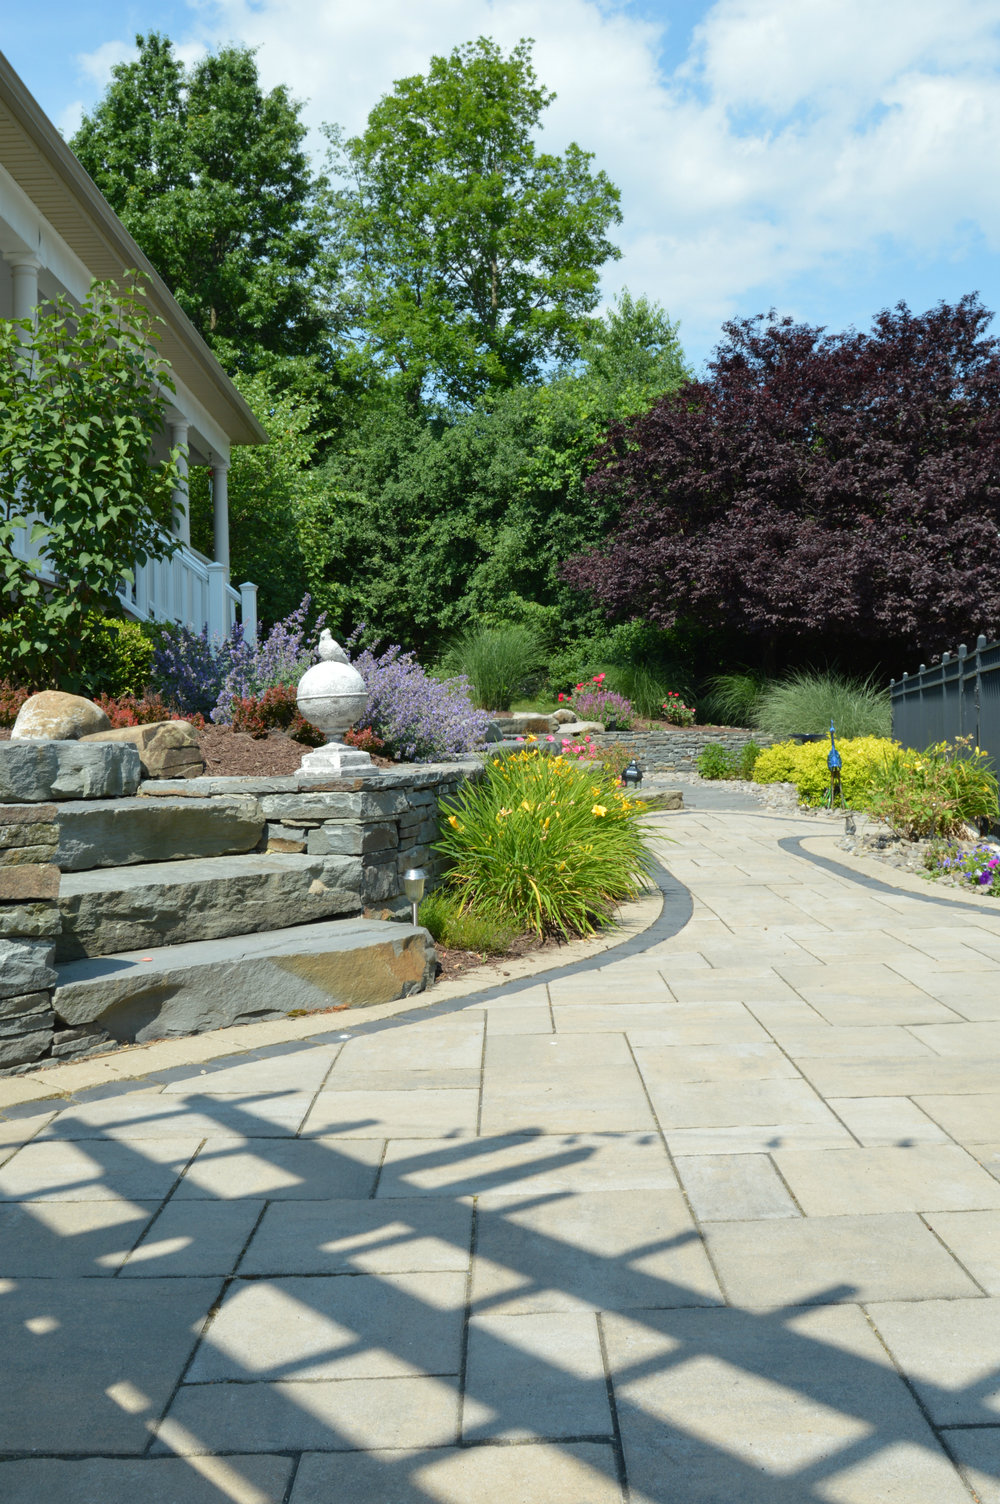 Landscape Design Ideas for Improving Flow and Accessibility for the Bethel, NY area